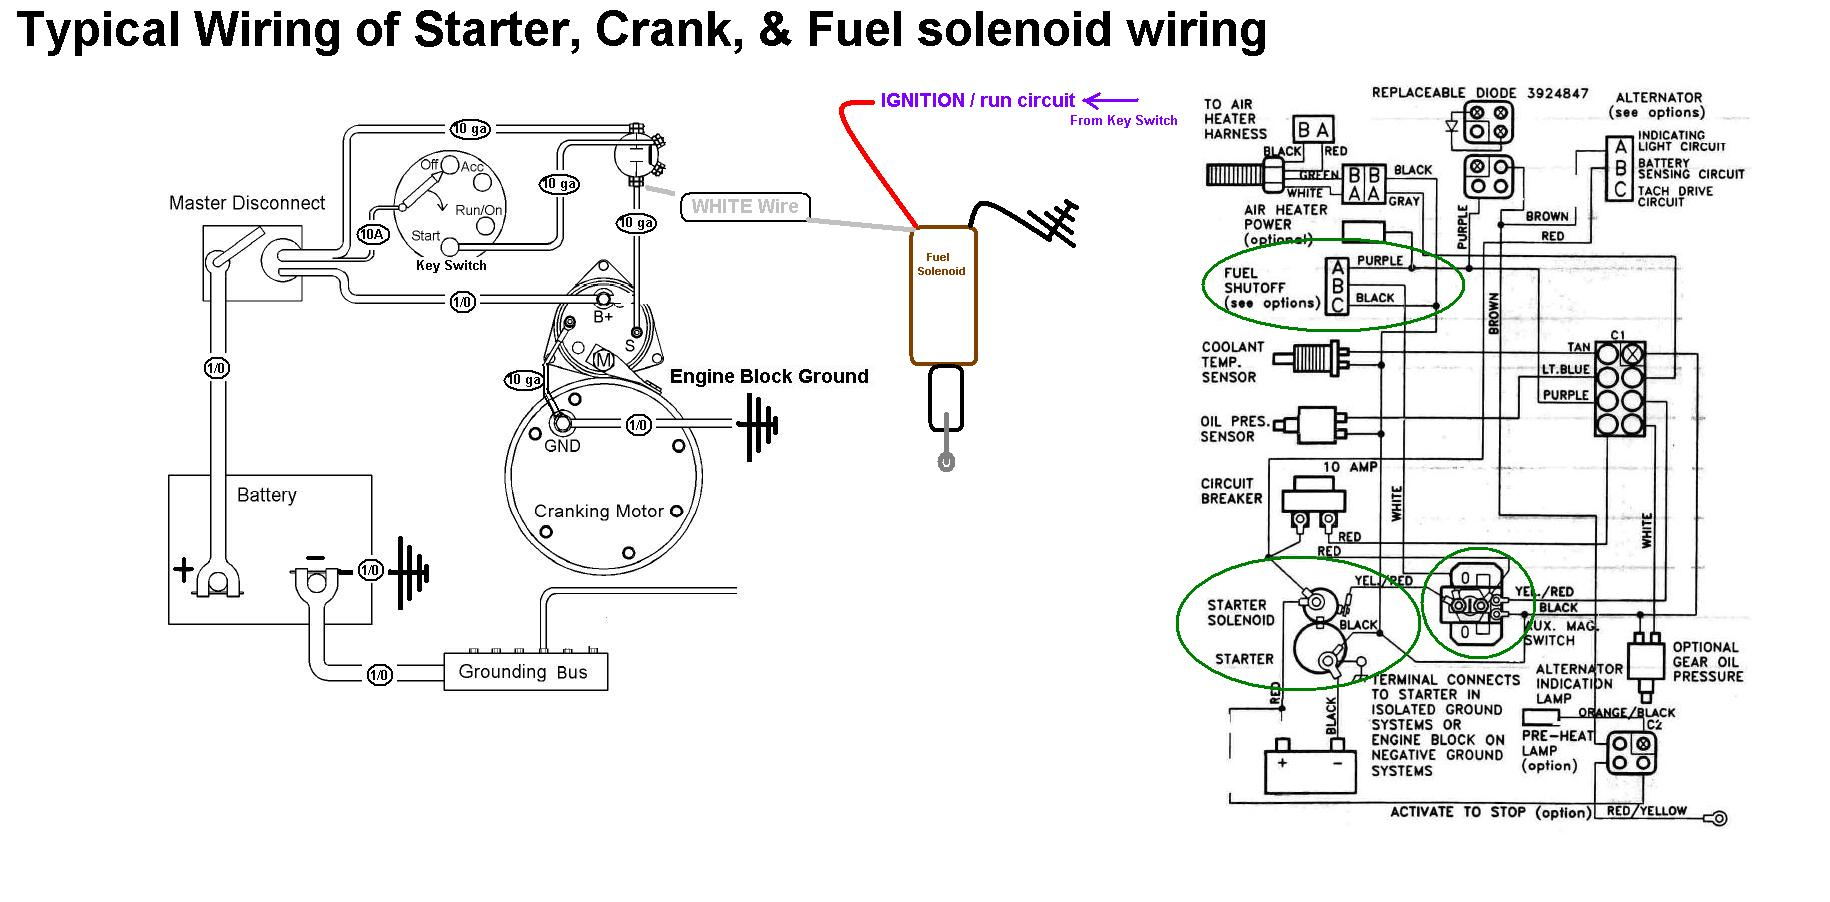 Viewtopic together with John Deere 345 Wiring Diagram moreover Crankcase Vent Tube Parts together with Melex Golf Cart Wiring Harness as well Sears Tractor Wire Diagram. on allis chalmers battery diagram